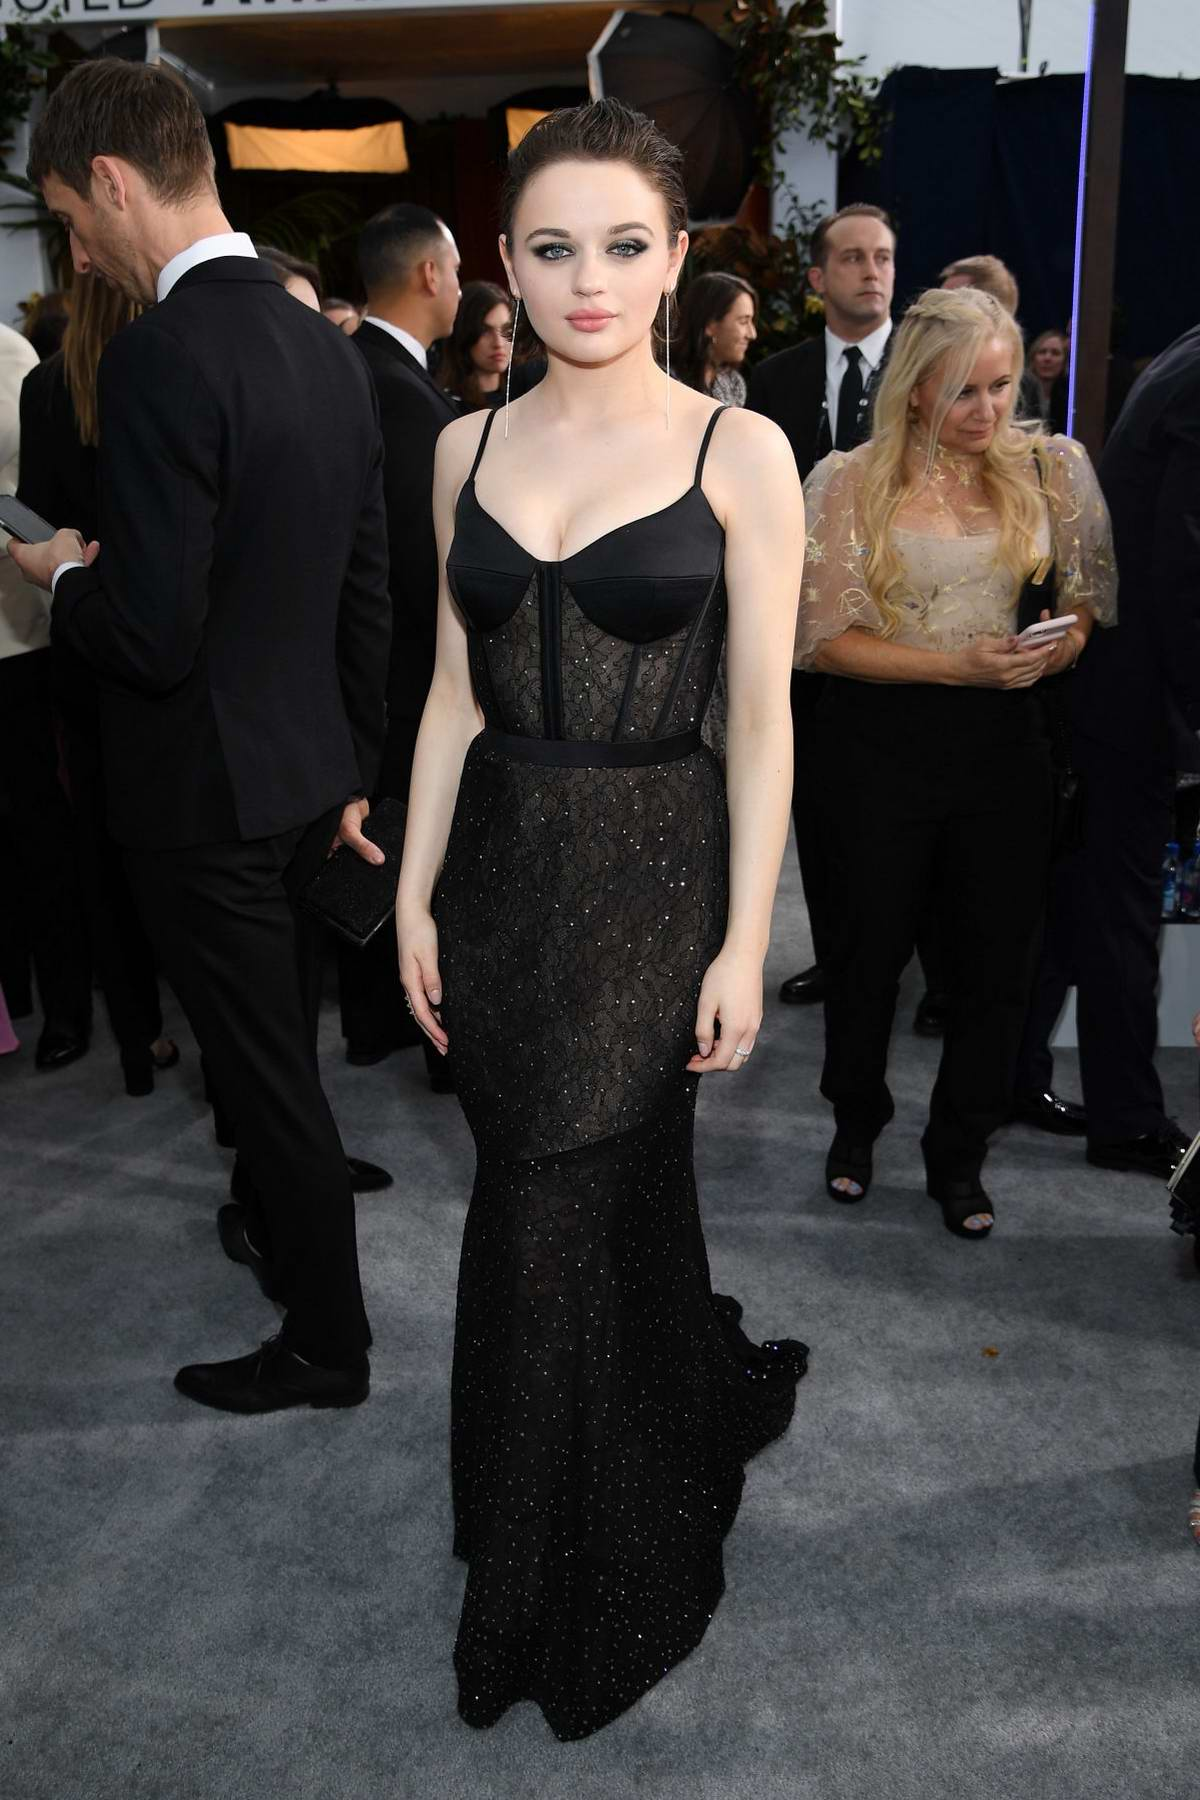 Joey King attends the 26th Annual Screen Actors Guild Awards at the Shrine Auditorium in Los Angeles